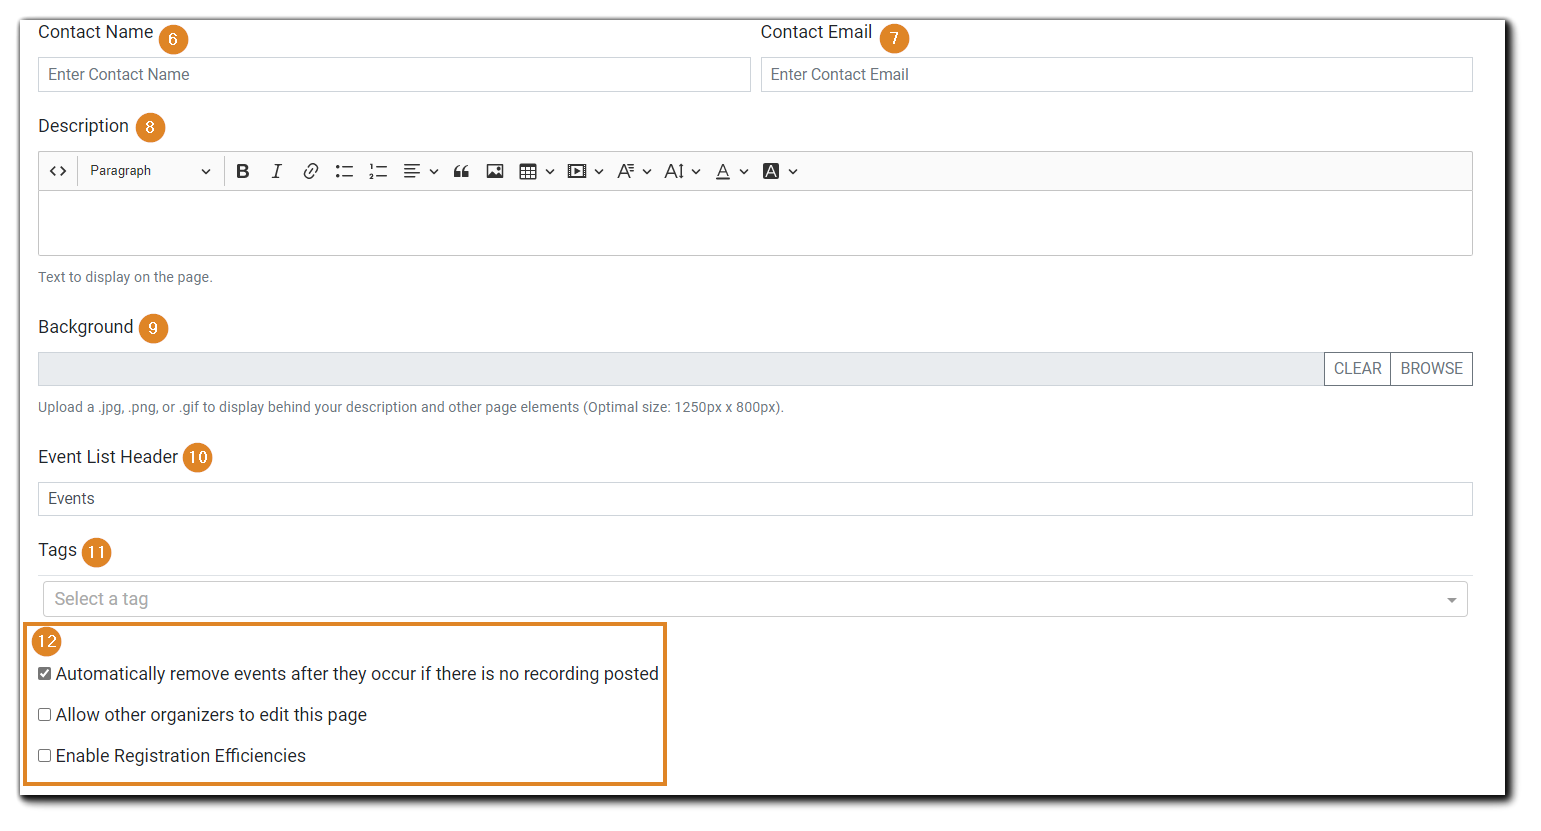 Screenshot: Create Page dialog continued: Contact Name, Contact Email, Description, Background, Event List Header, Tags, Page options - auto Auto remove past events, Allow other users to edit, Enable Registration Efficiencies.